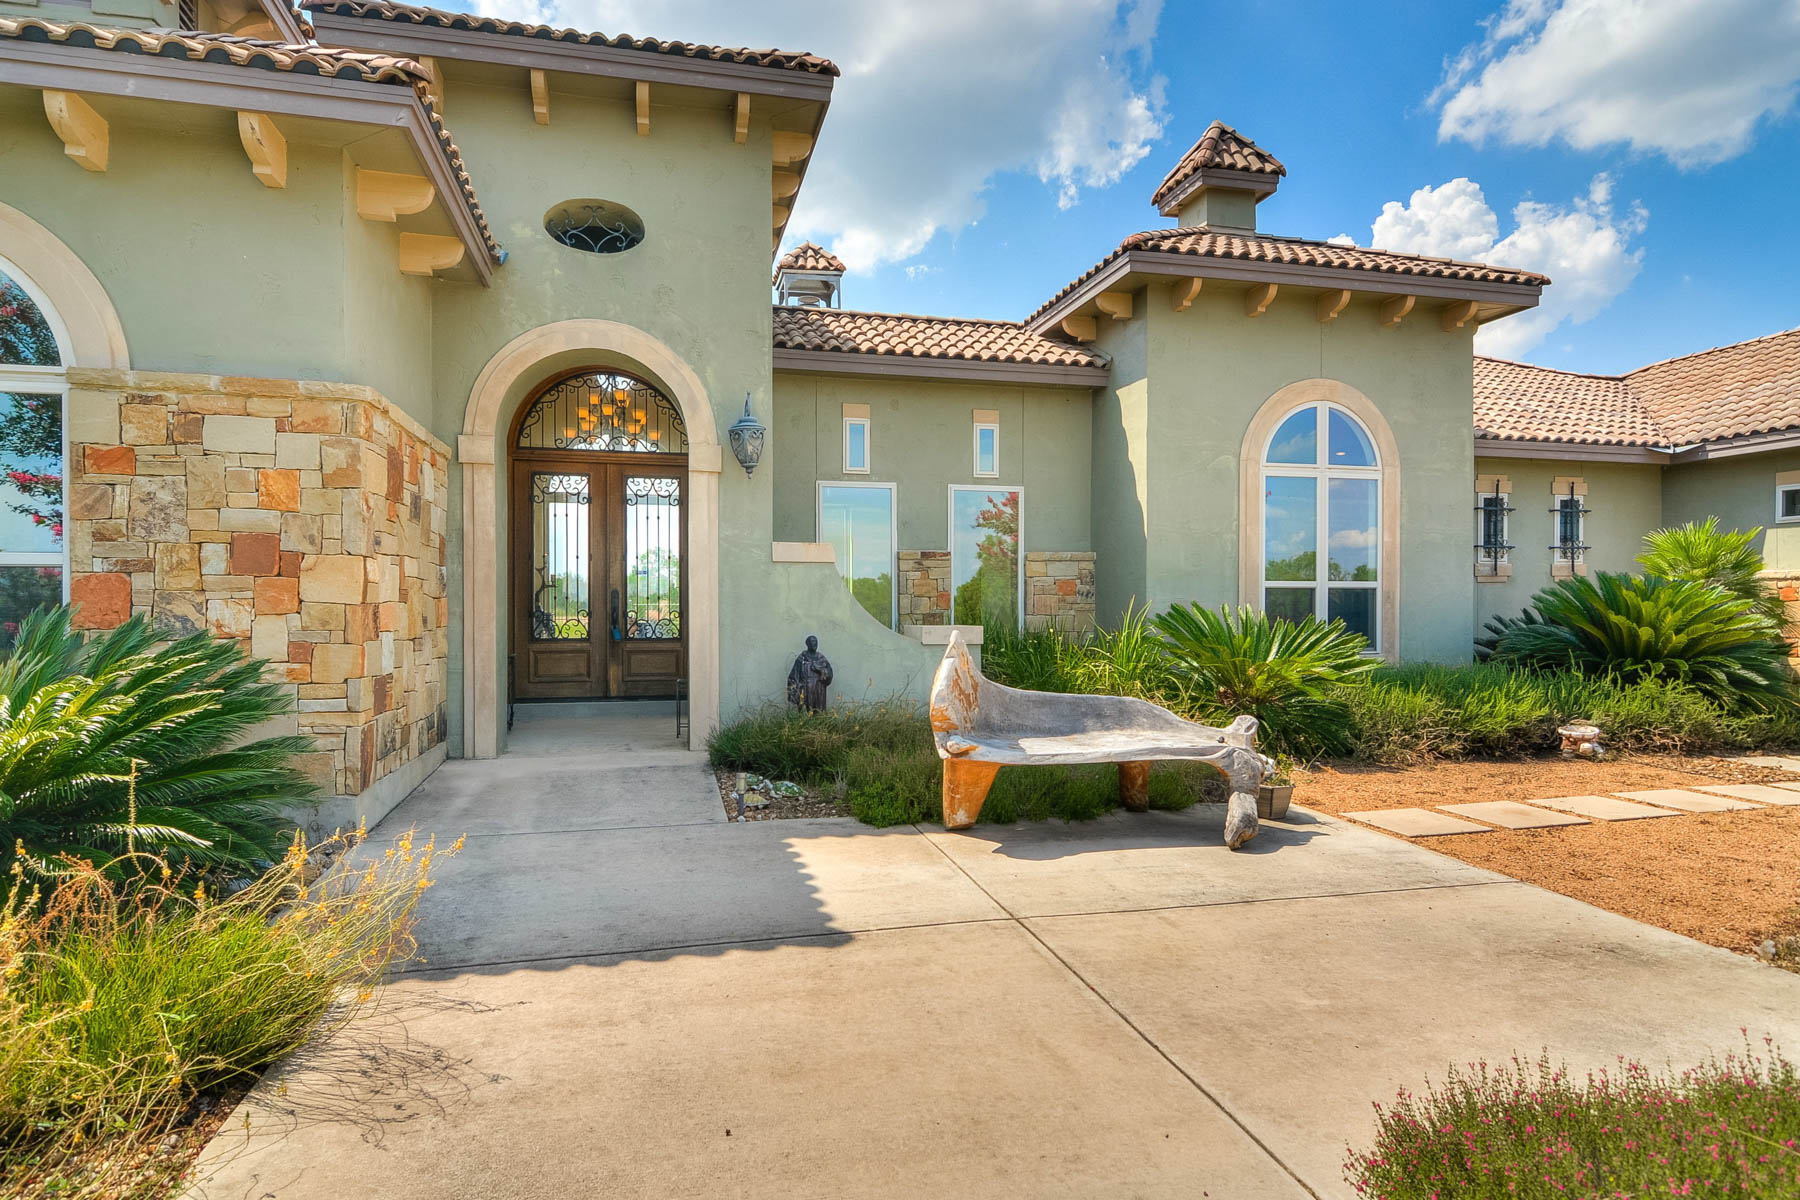 Single Family Home for Sale at Stunning Mediterranean Custom Home 7397 Real Rd China Grove, Texas 78263 United States